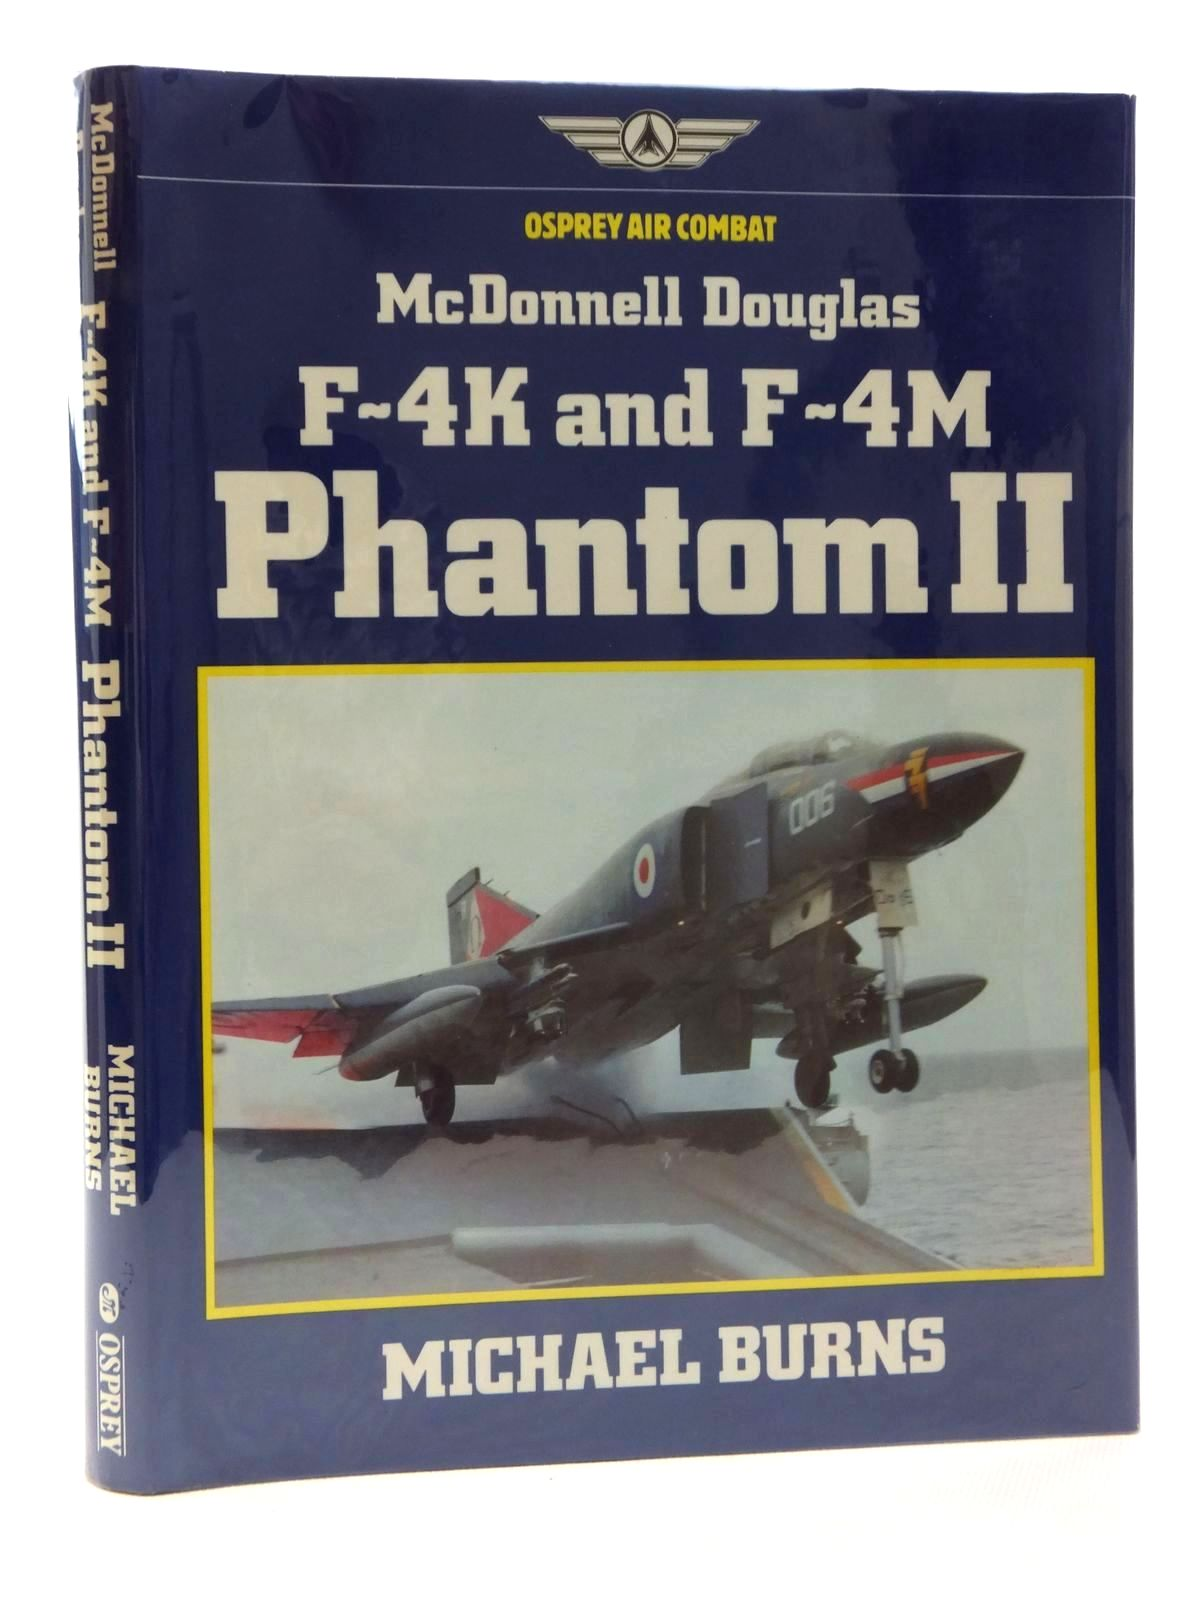 Photo of MCDONNELL DOUGLAS F-4K AND F-4M PHANTOM II written by Burns, Michael published by Osprey Air Combat (STOCK CODE: 2123803)  for sale by Stella & Rose's Books